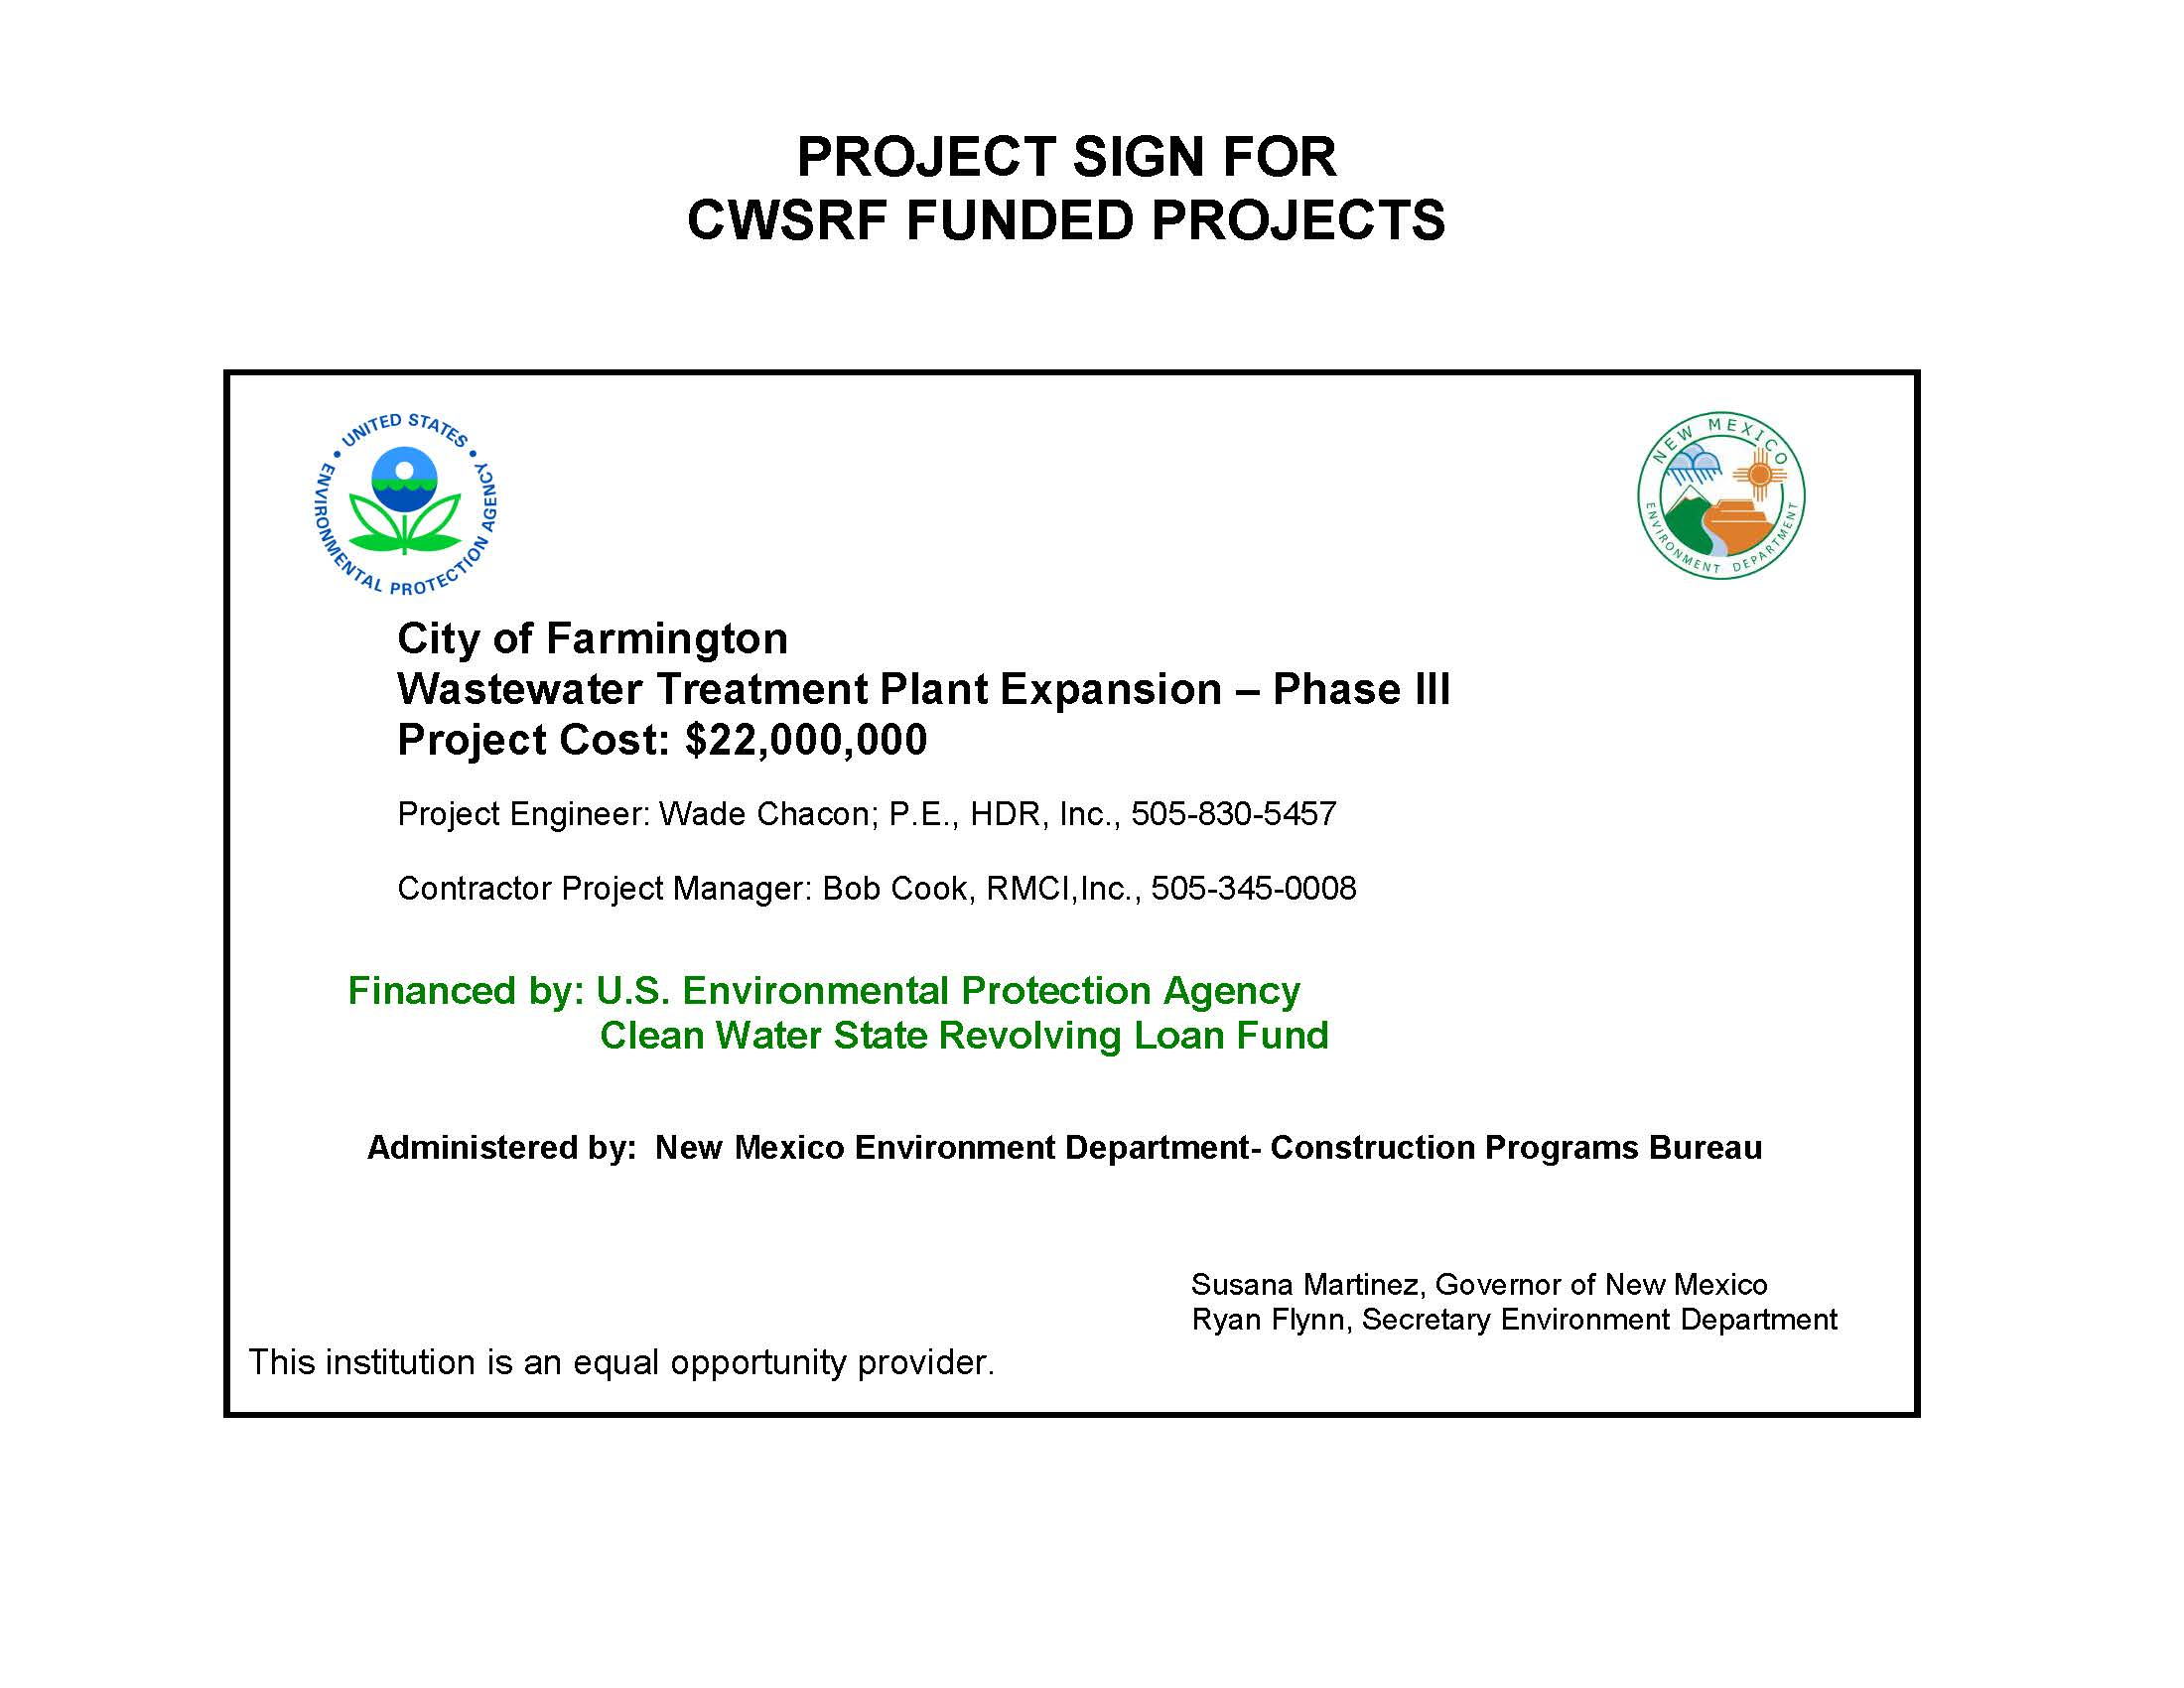 COF Wastewater Treatment Plant CWSRF Project Sign